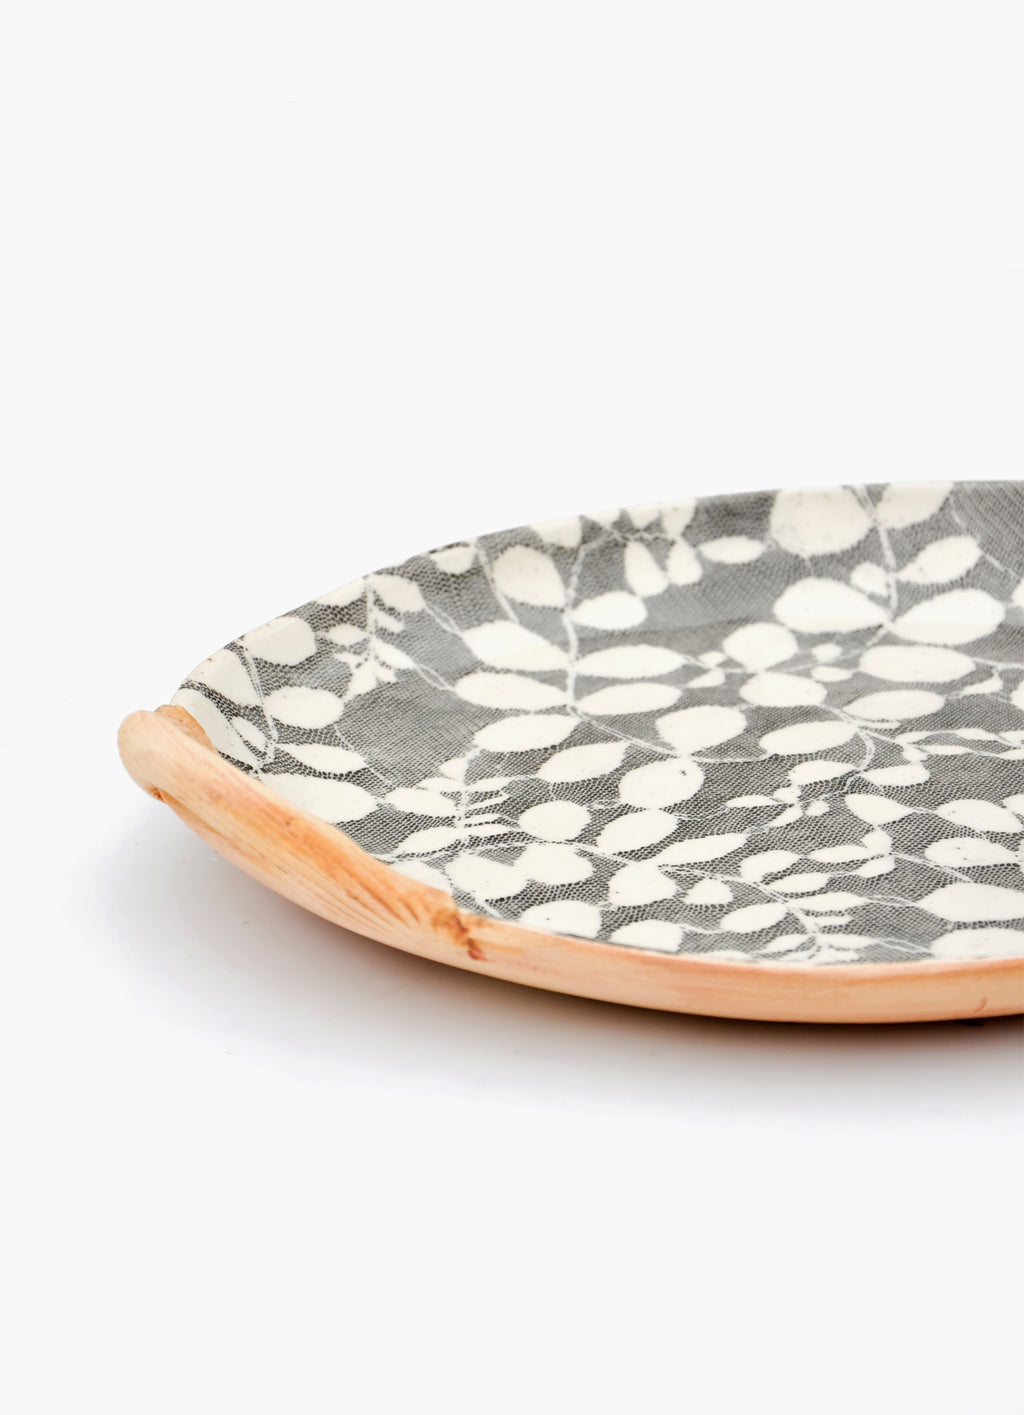 Pressed Pattern Serving Tray - LEIF